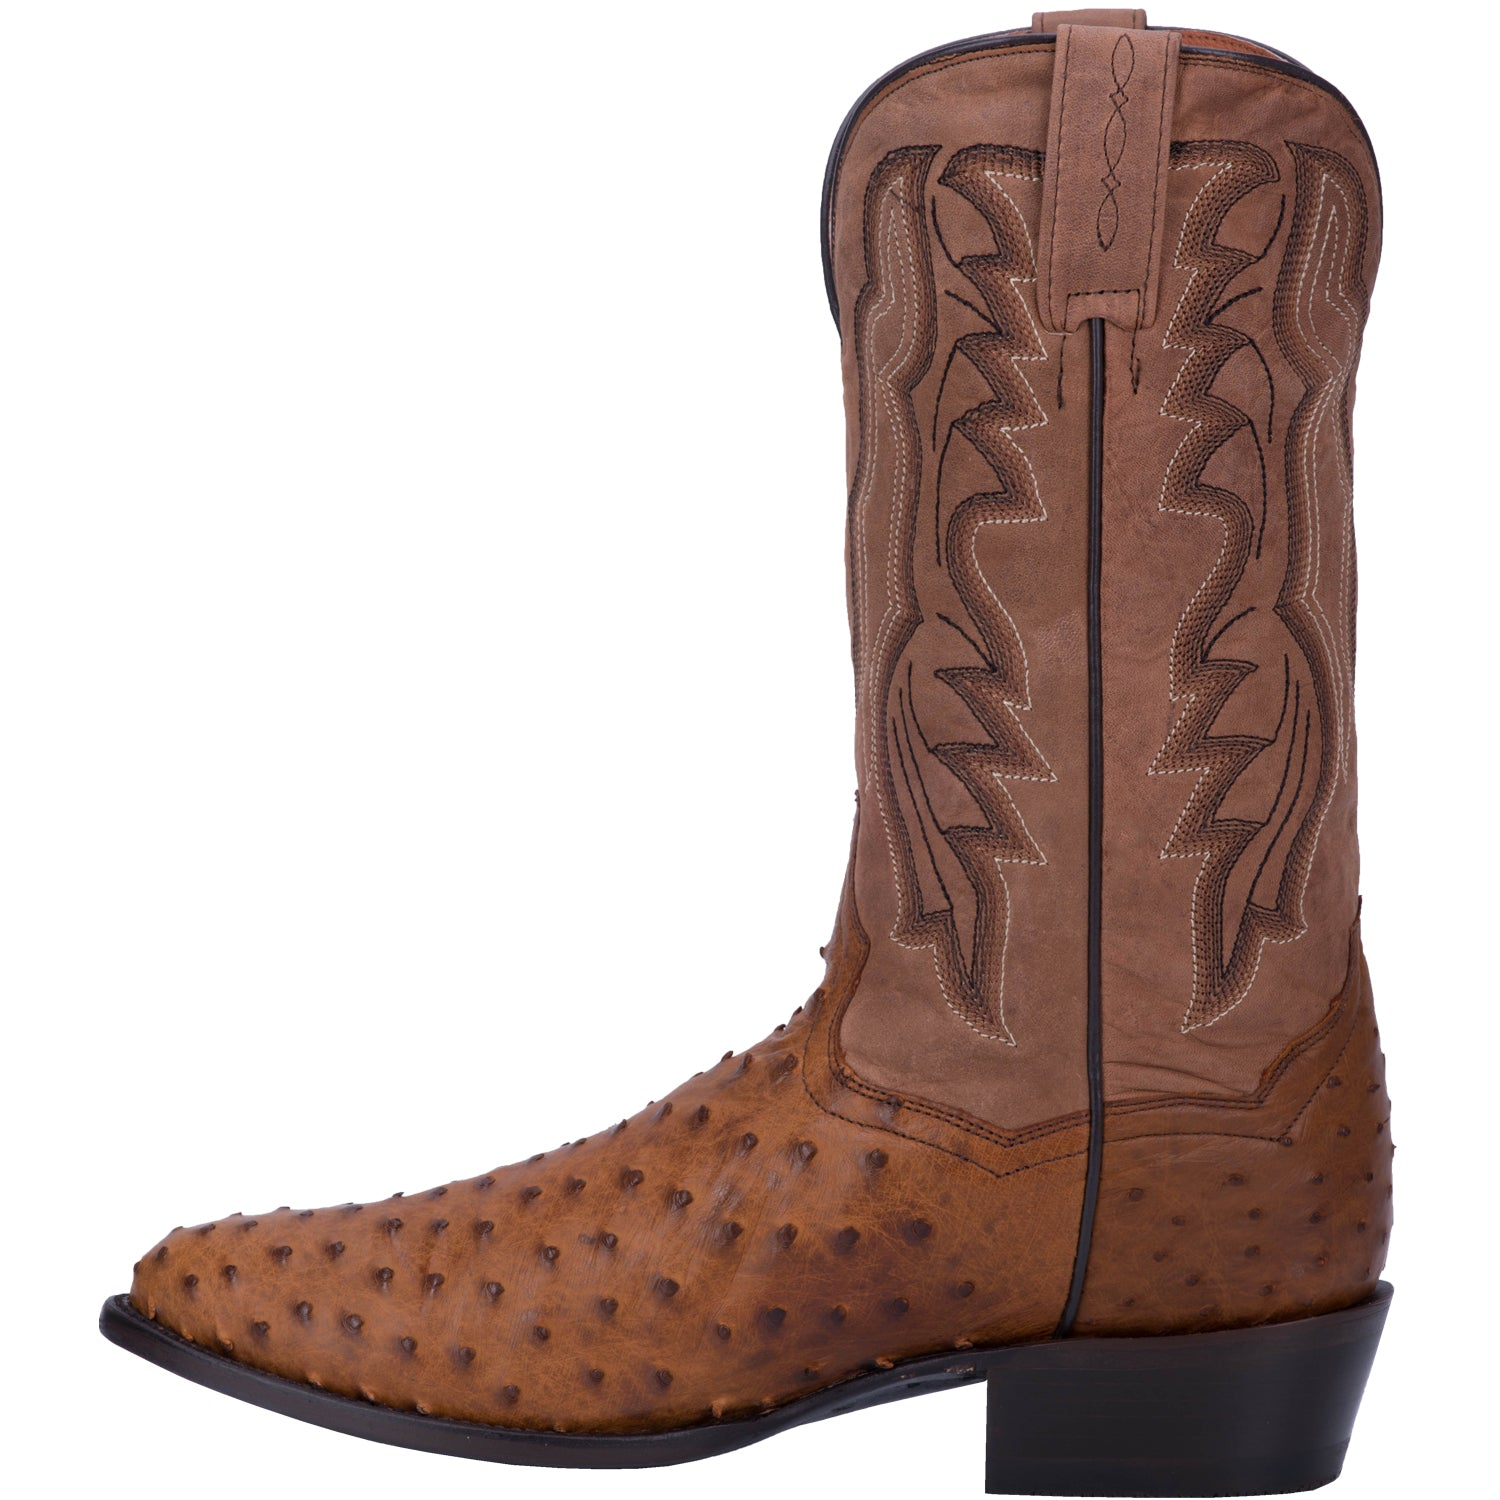 TEMPE FULL QUILL OSTRICH BOOT